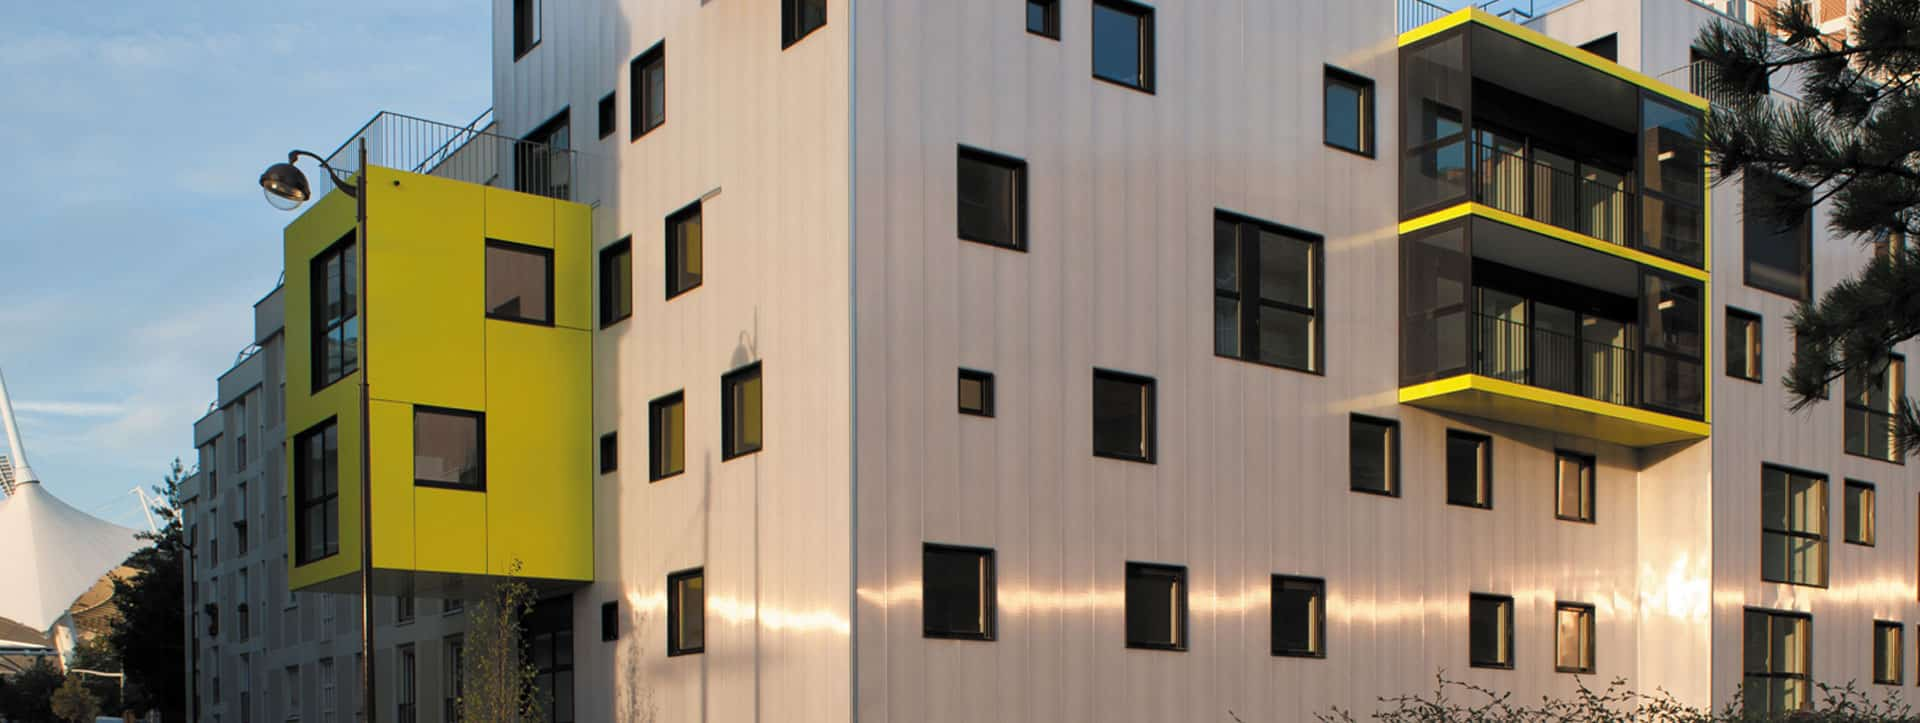 cladding_top-5